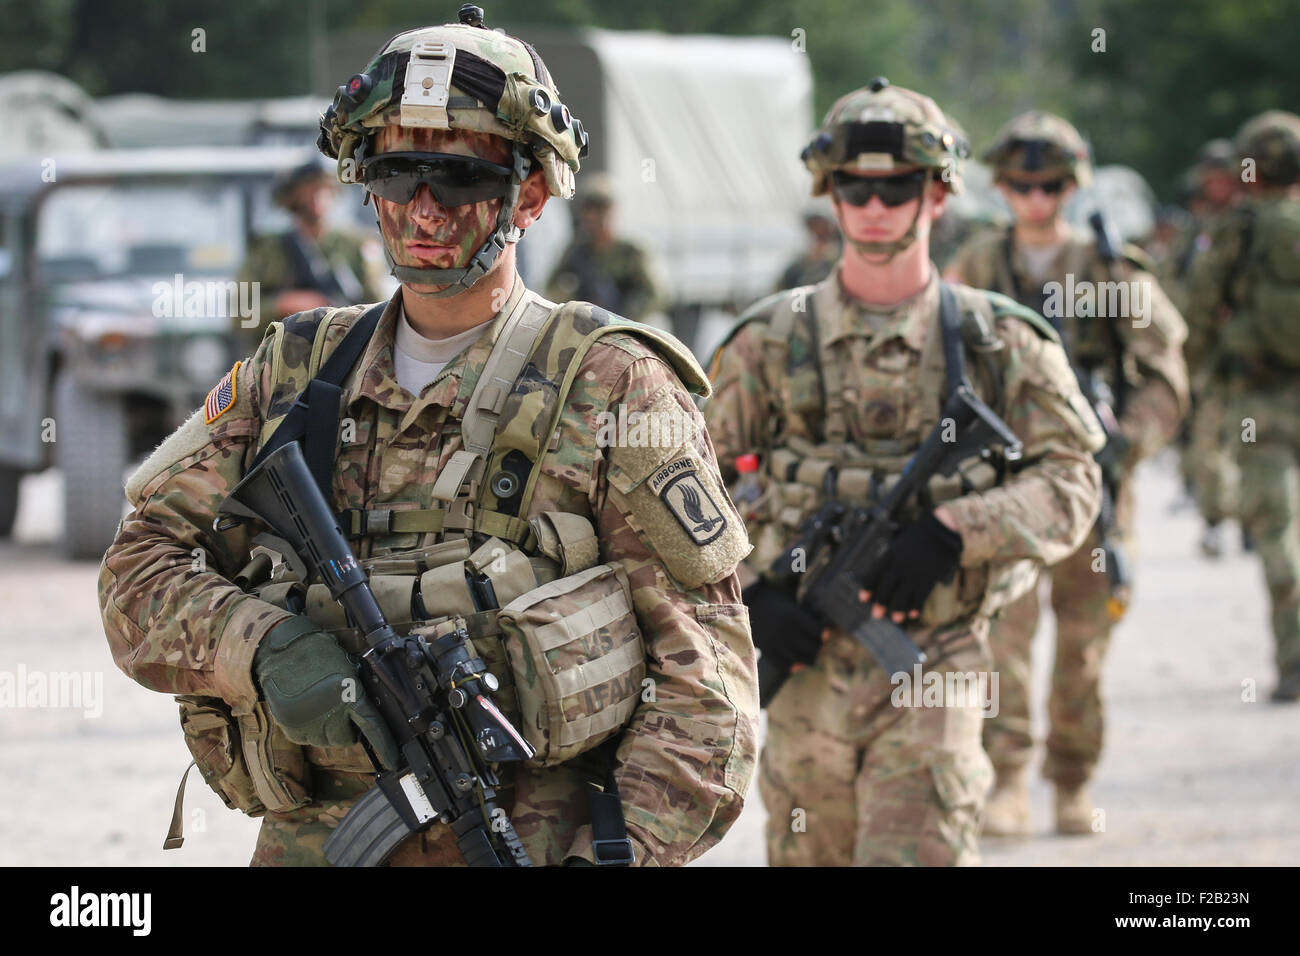 U.S. Army 173rd Airborne Brigade Soldiers head into the field to take part  in exercise Immediate Response September 14, 2015 in Slunj, Croatia.  Immediate Response is a multinational field training exercise in